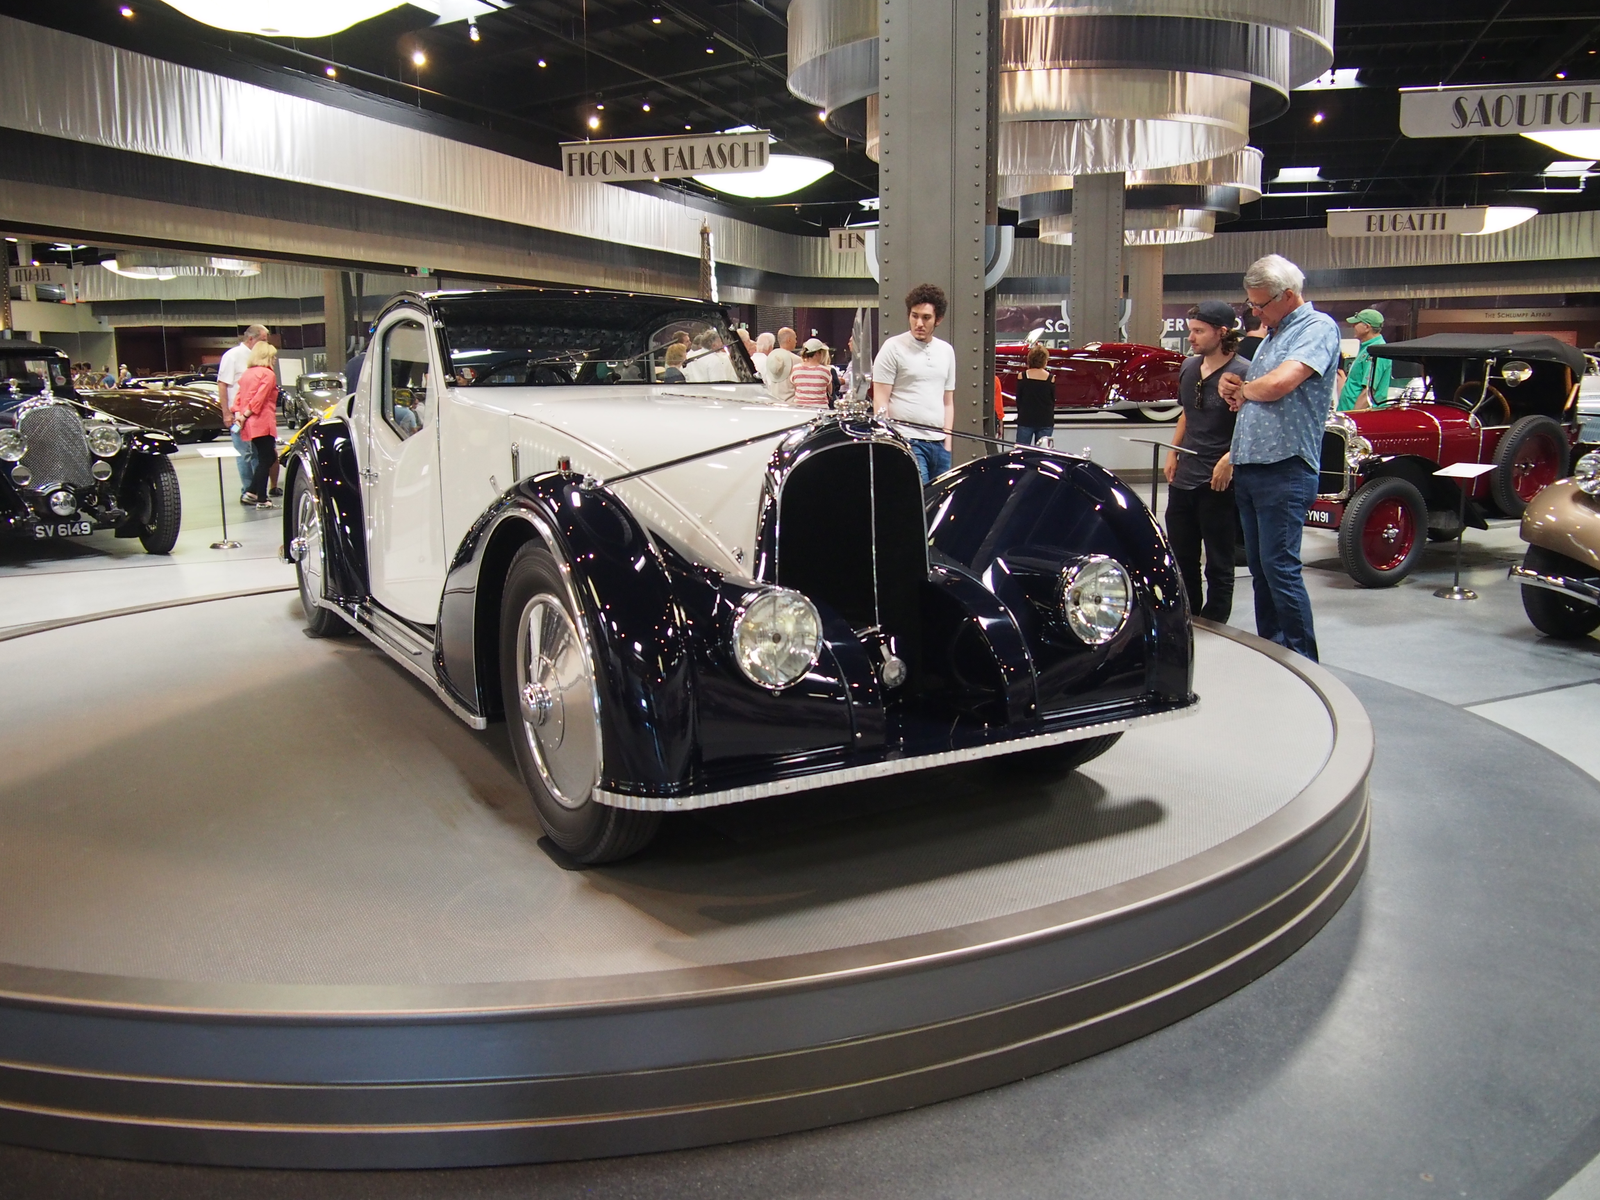 This is one of the most incredible works of art I've ever seen. A 1934 Avions Voisin Type C37 Aerosport Coupé. The body is mostly a recreation of the original by Voisin and Telmont on the original frame.